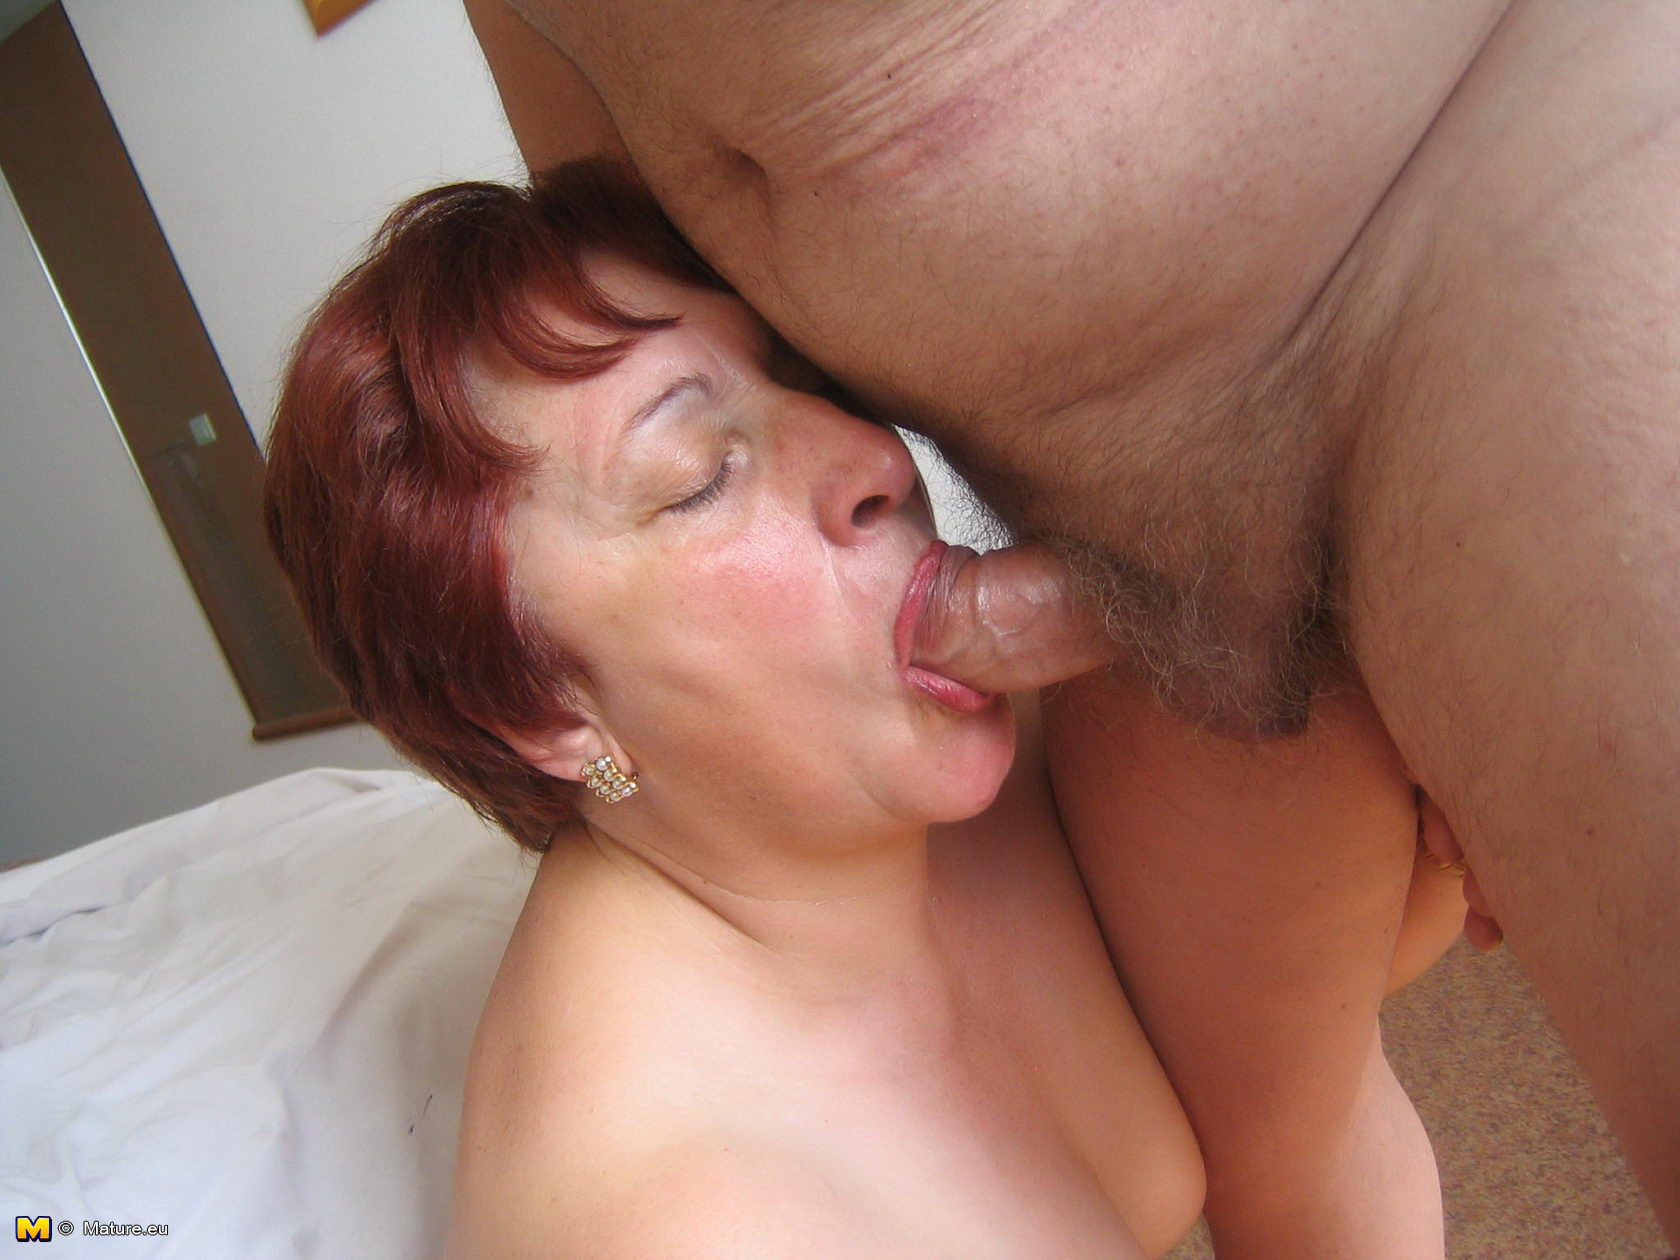 Horny Interracial Gay Gets A Facial